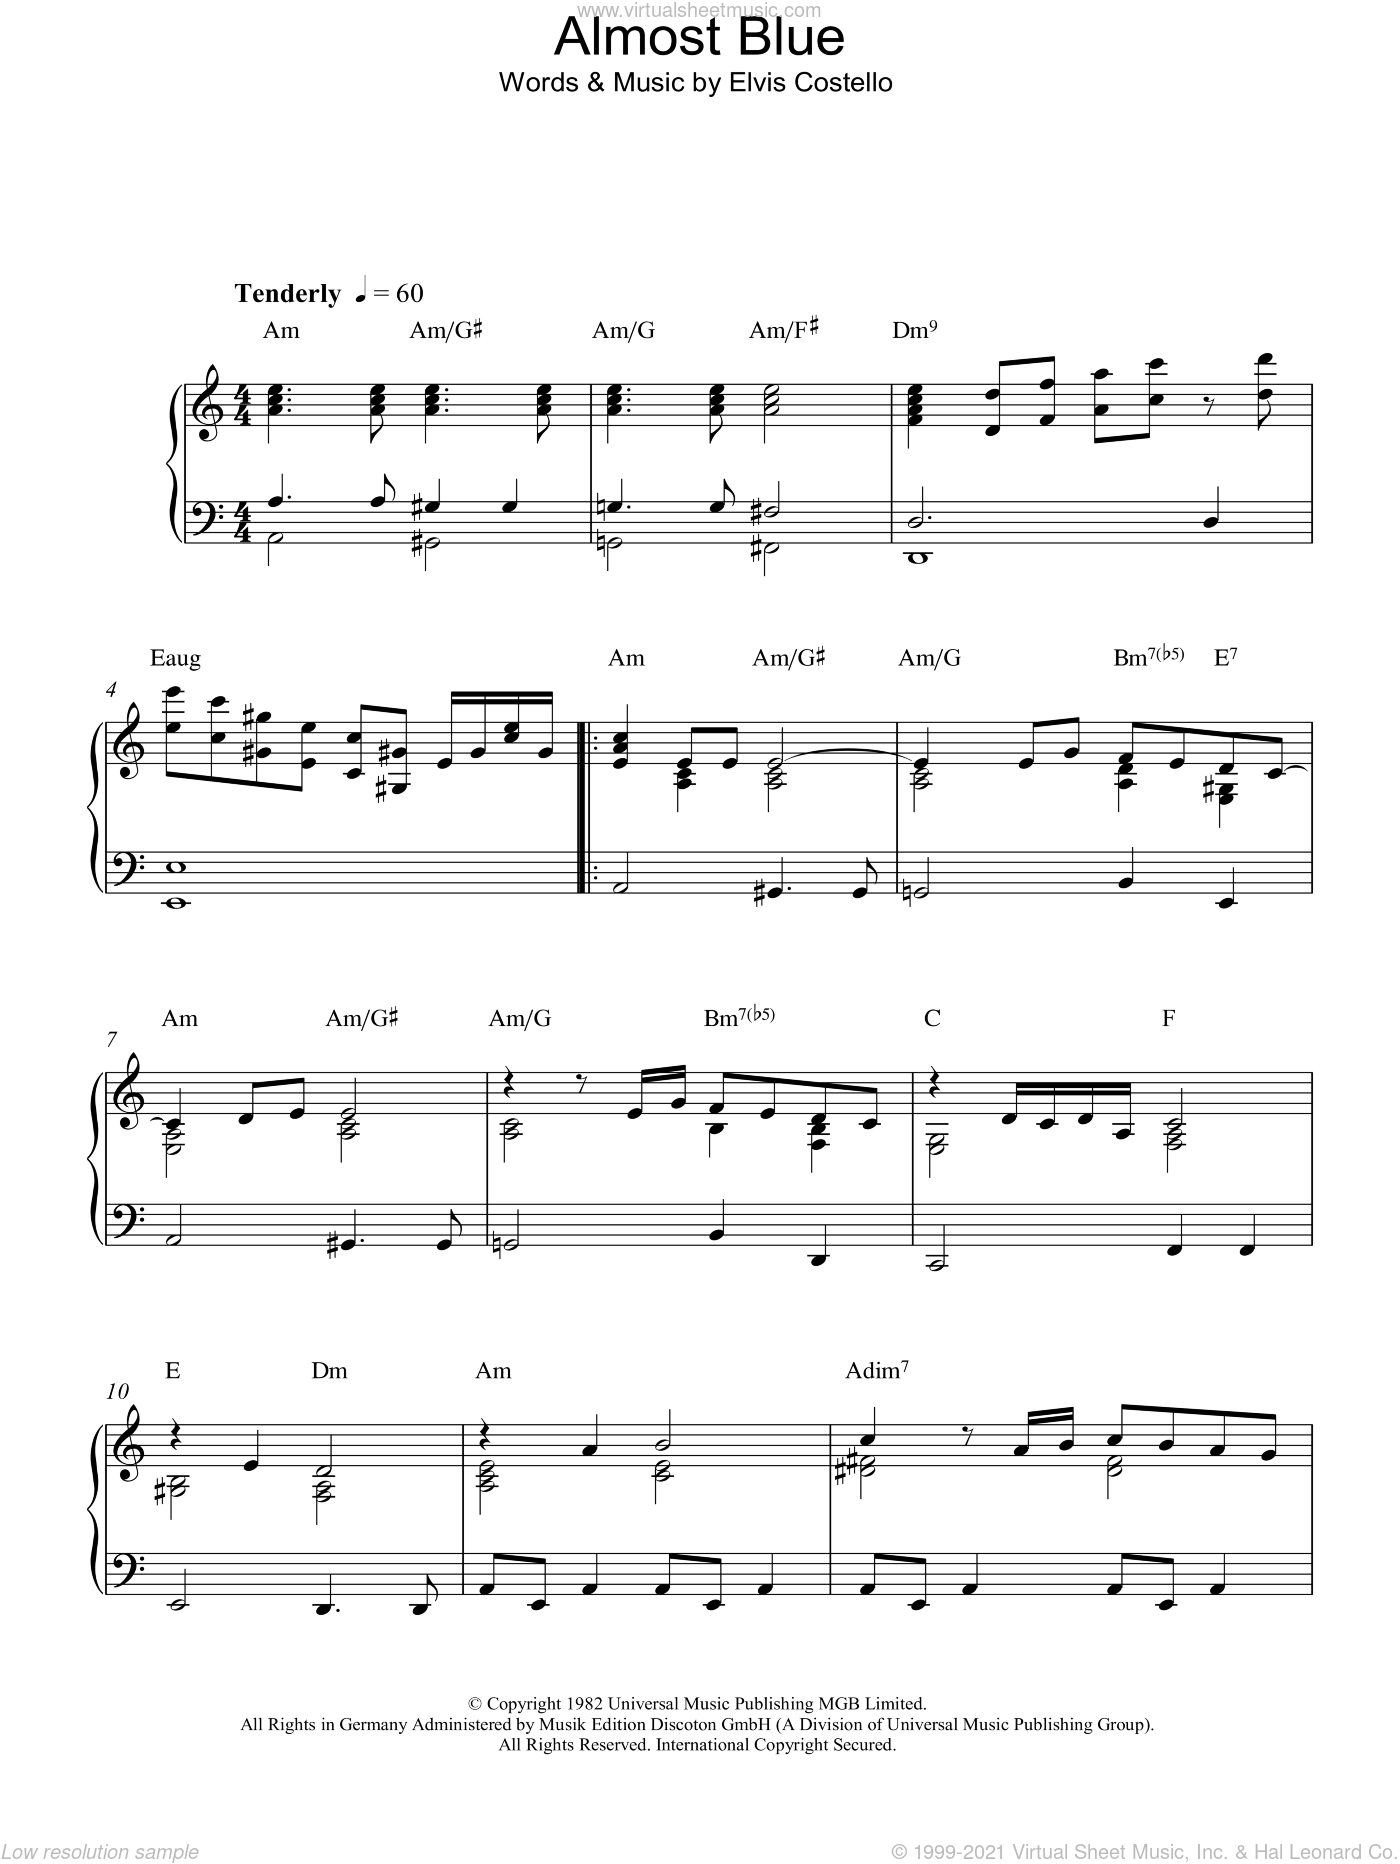 Almost Blue sheet music for piano solo by Elvis Costello